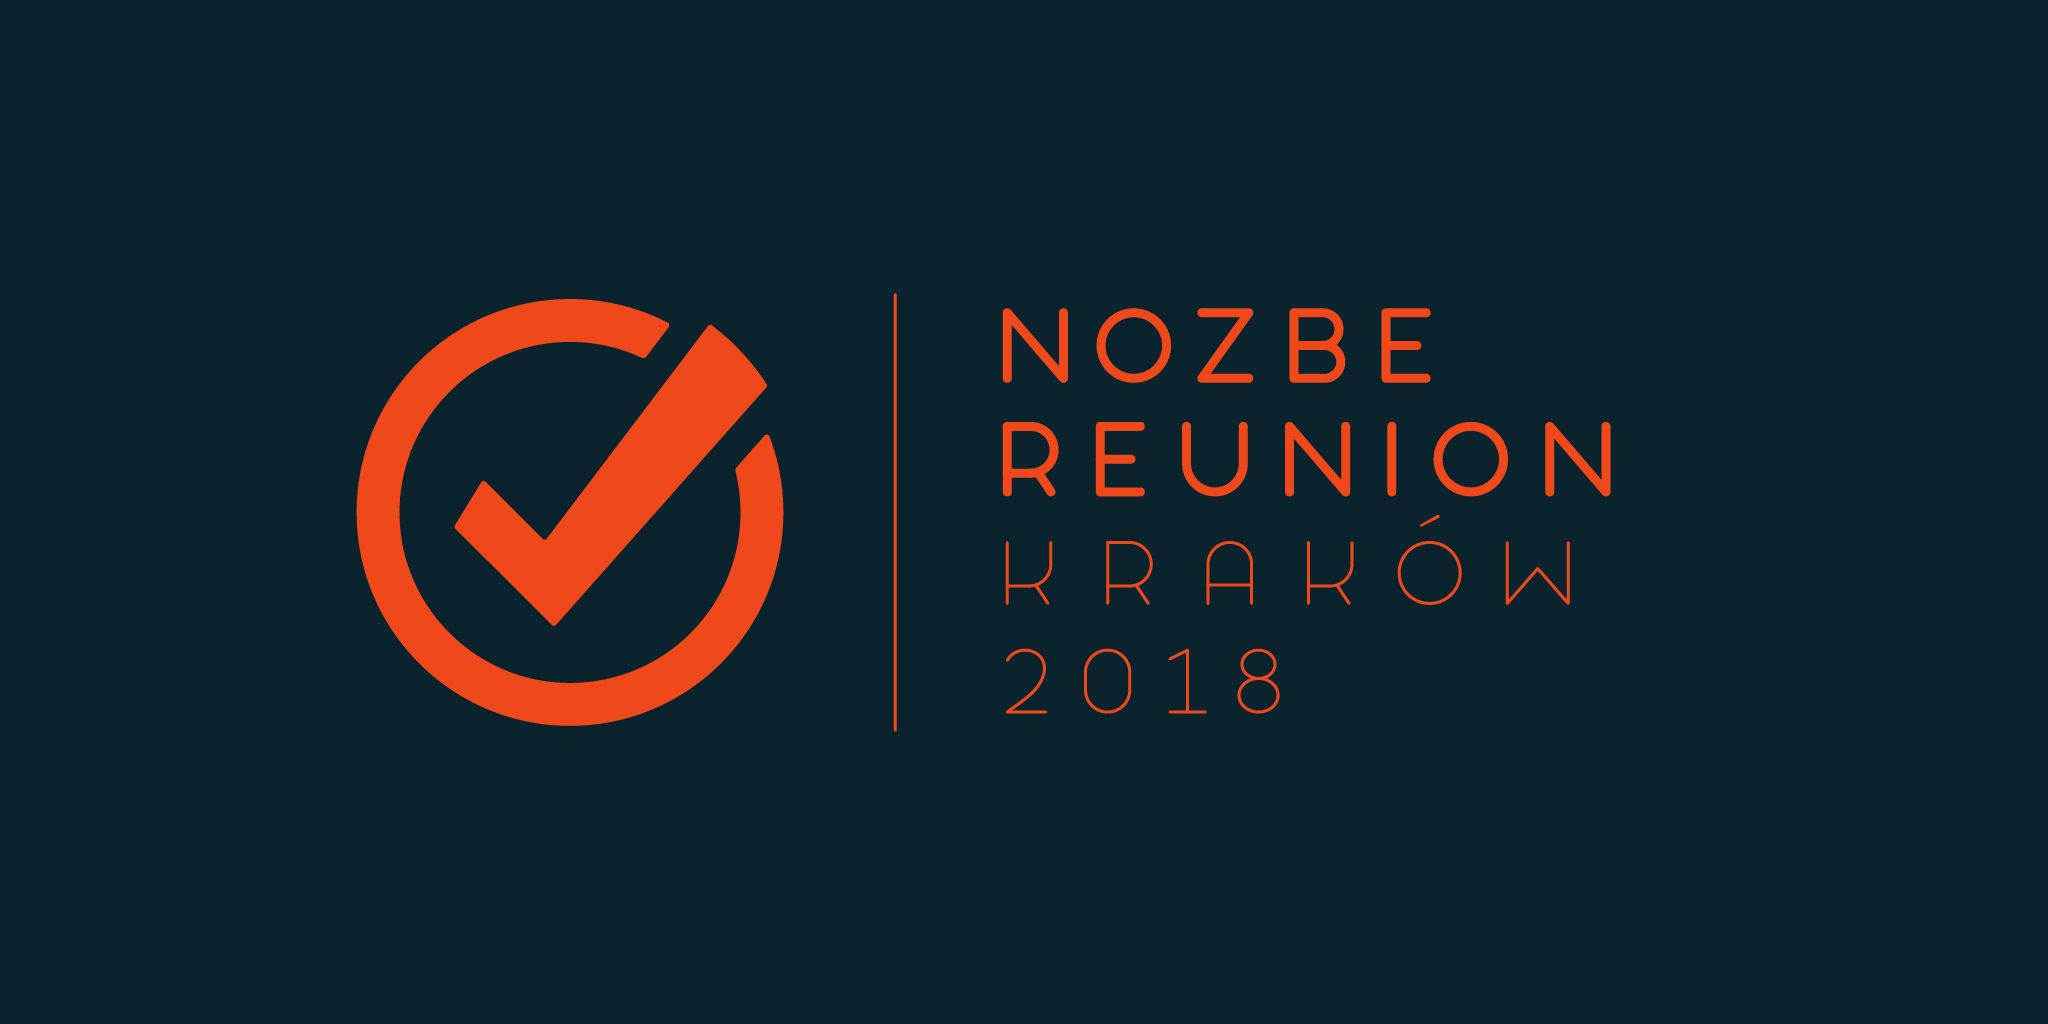 Nozbe Reunion - Kraków (October 15-19, 2018) - customer support slowdown